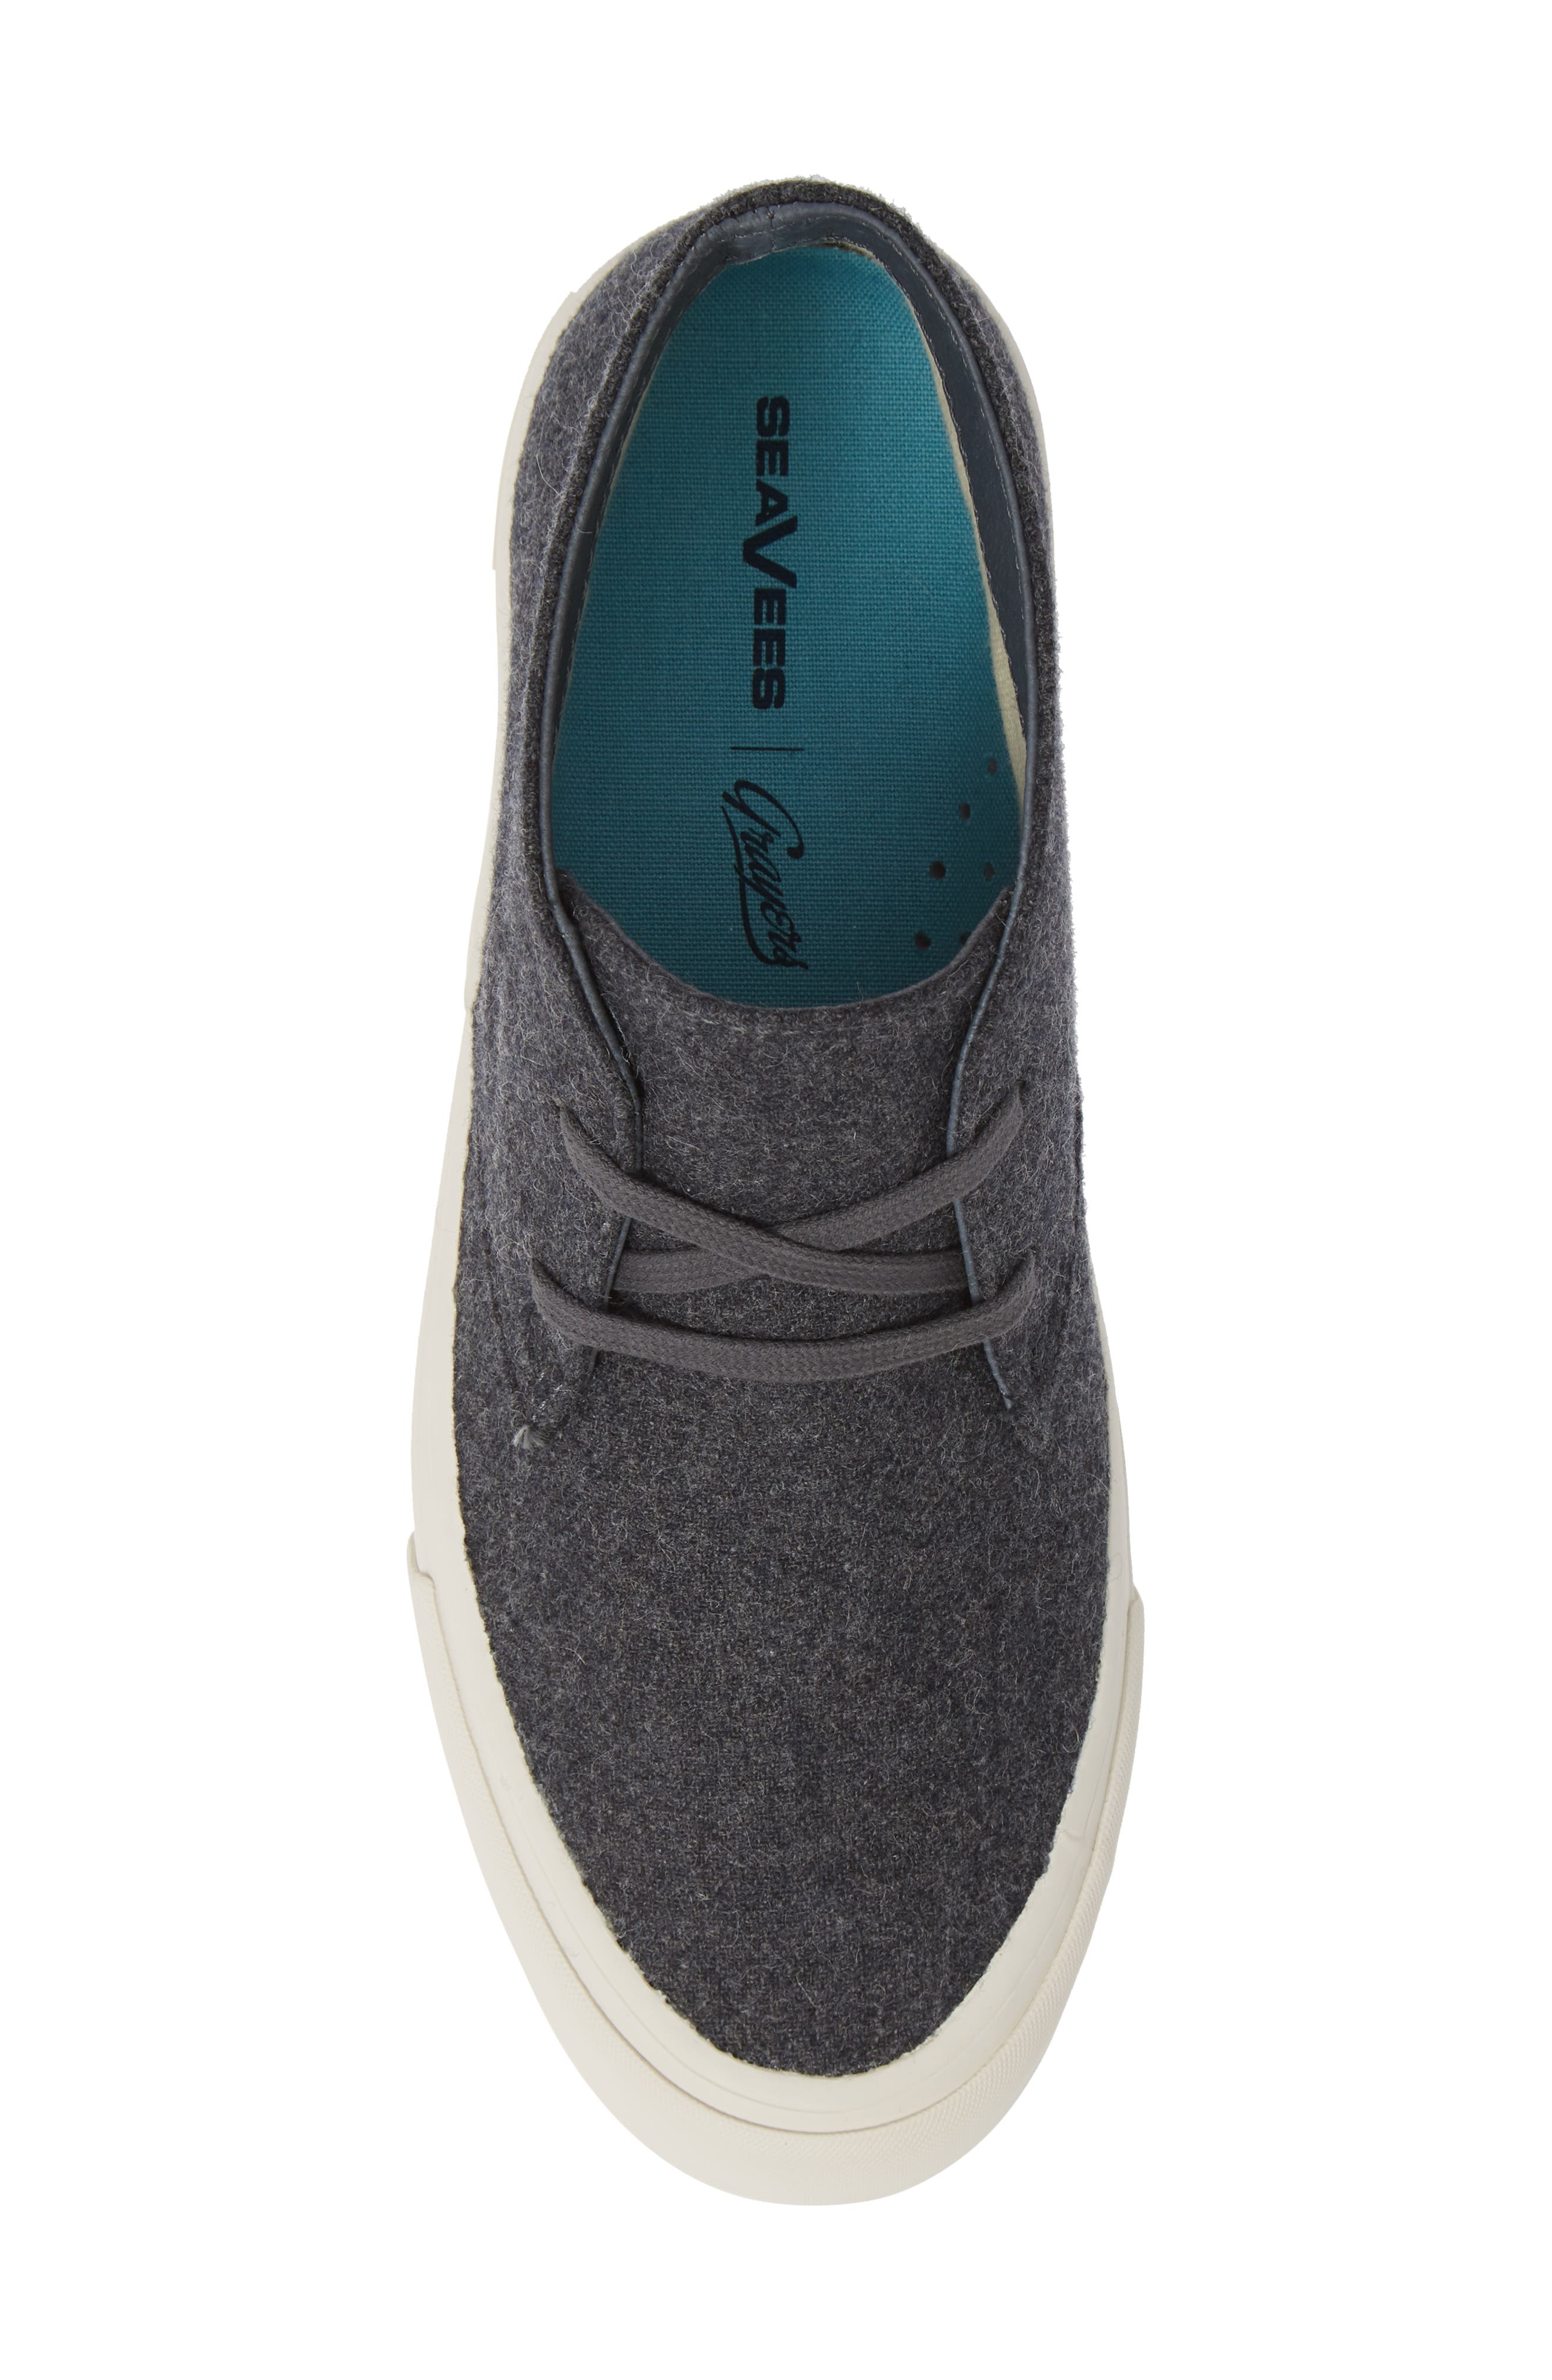 Maslon Chukka Sneaker,                             Alternate thumbnail 5, color,                             CHARCOAL WOOL FLANNEL